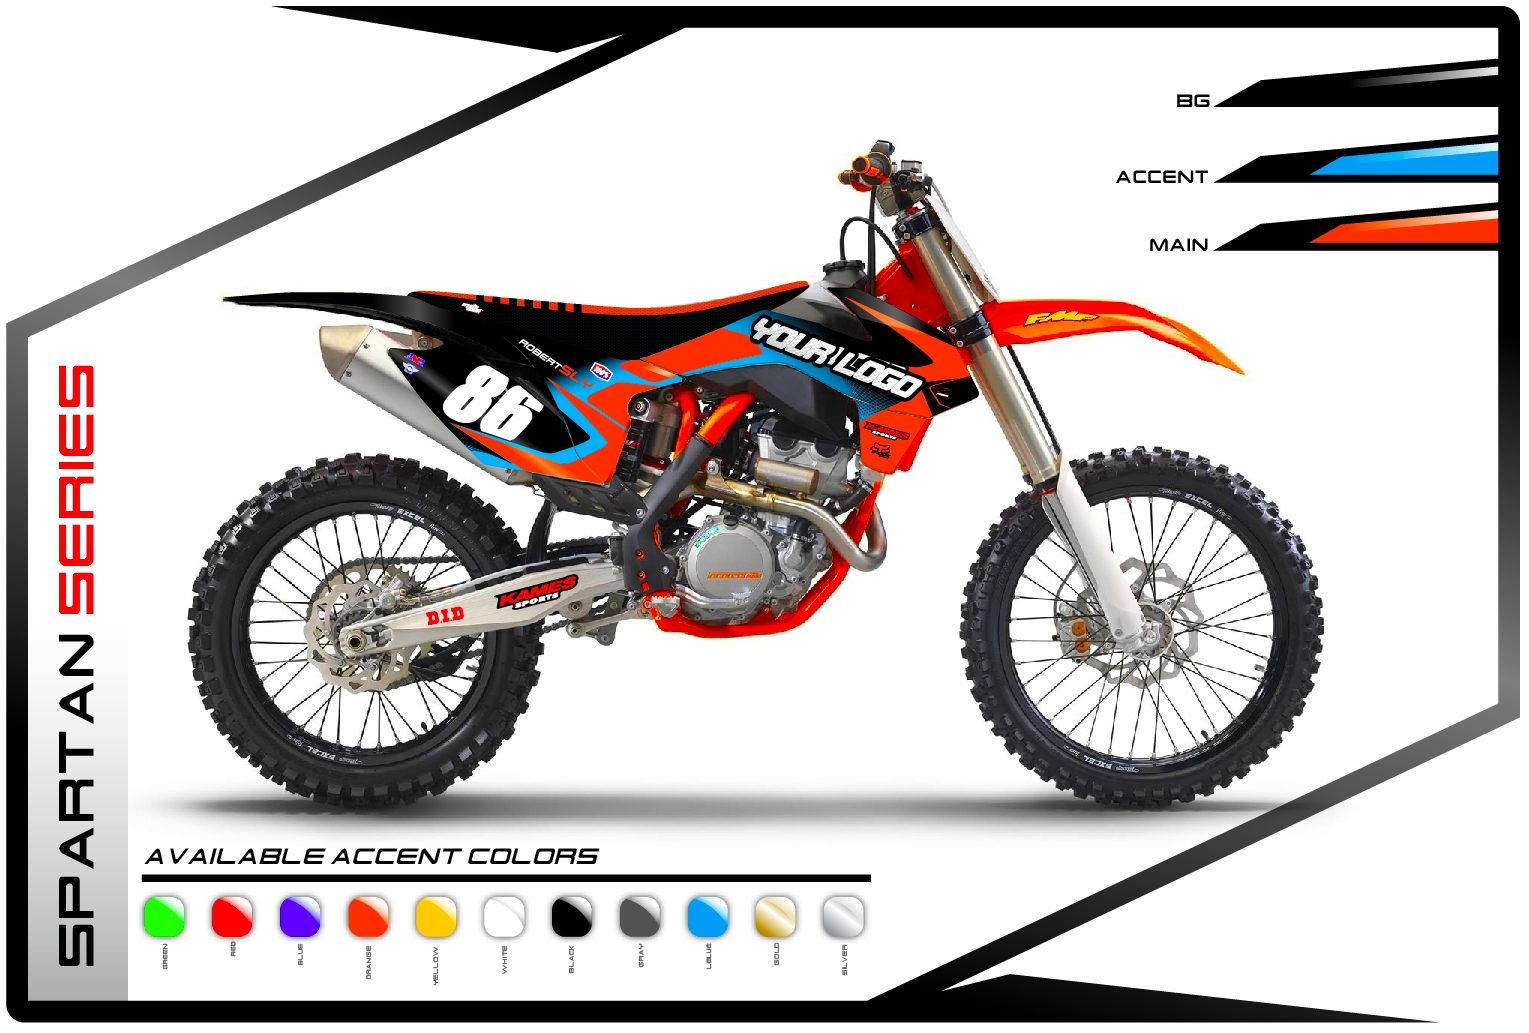 Spartan Series KTM - Motocross Graphics